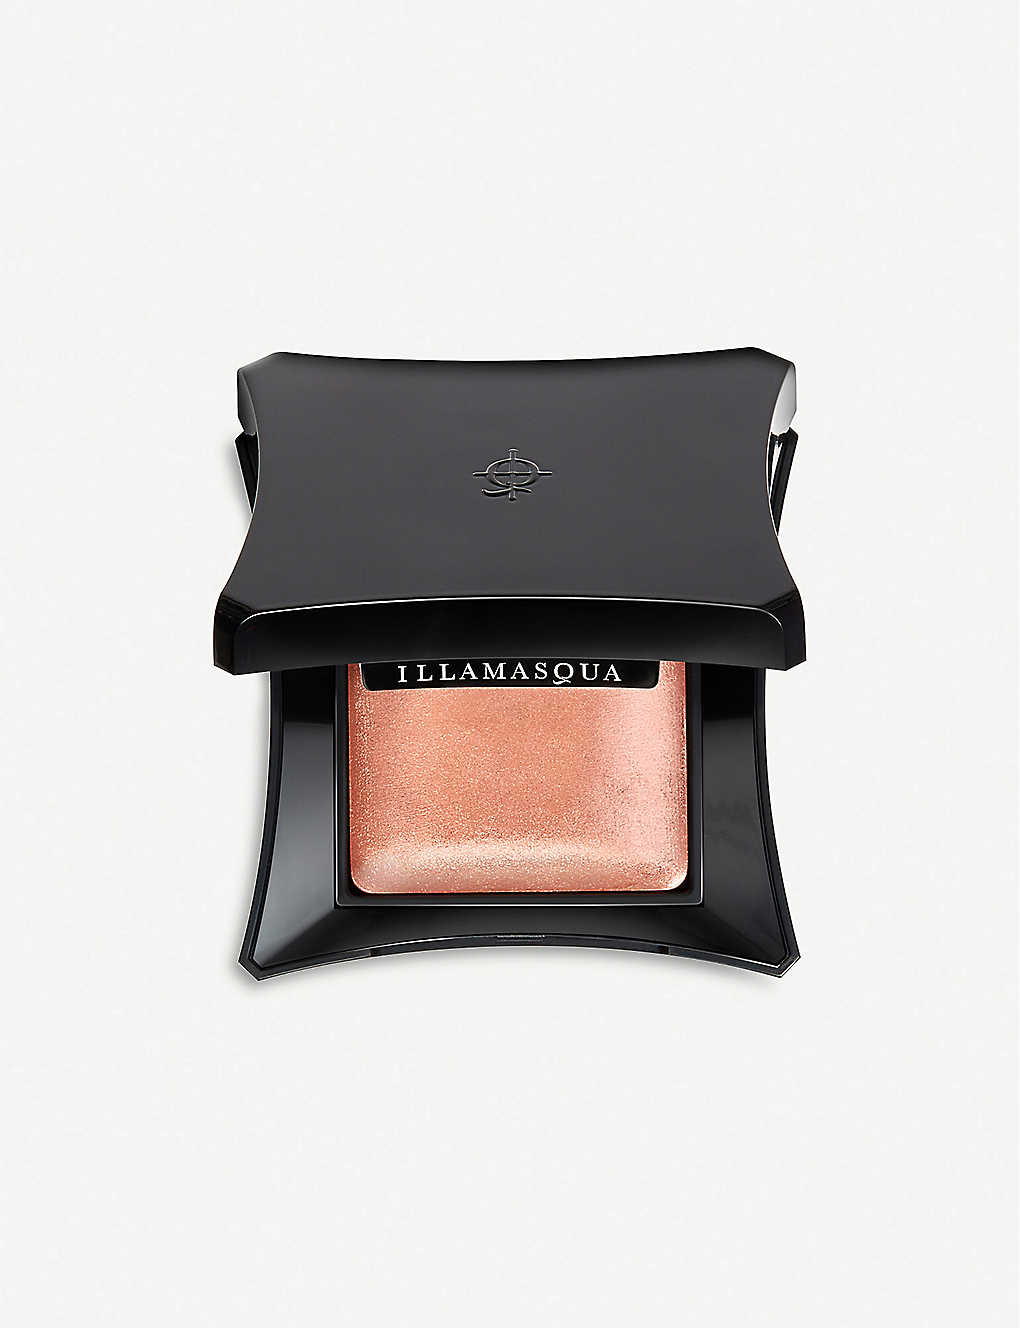 ILLAMASQUA: Ready to Bare Beyond powder 7g